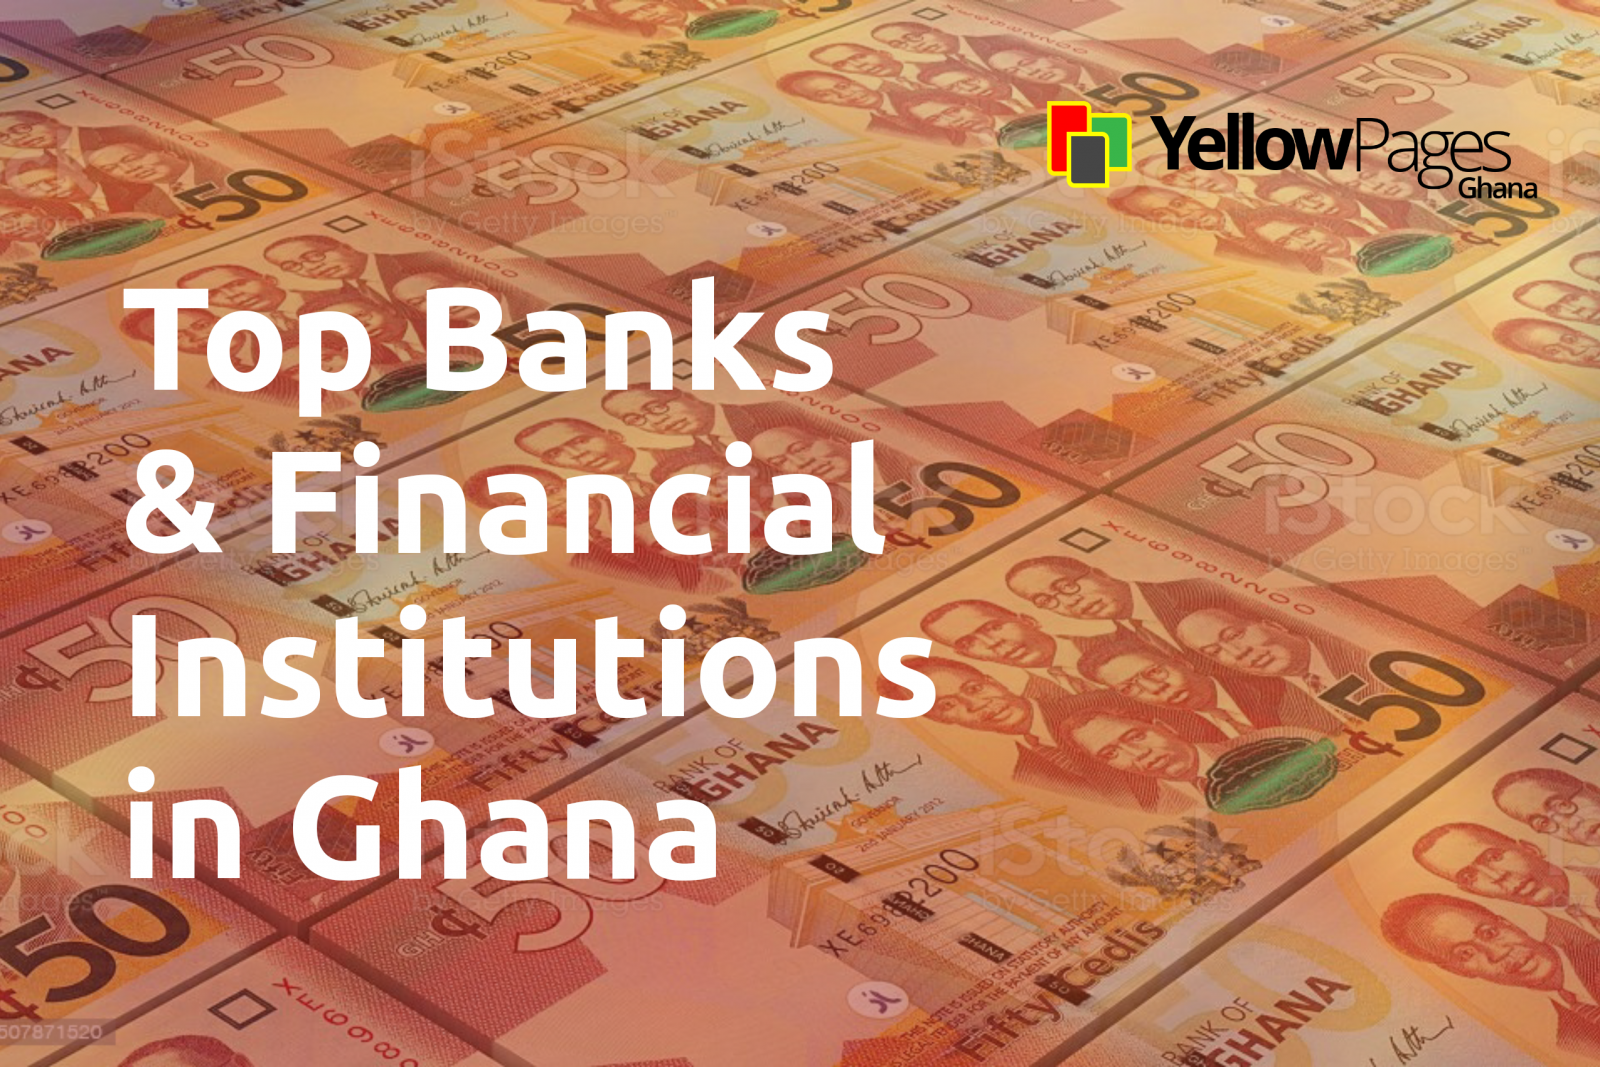 Top Banks and Financial Institutions in Ghana. Yellow Pages Ghana